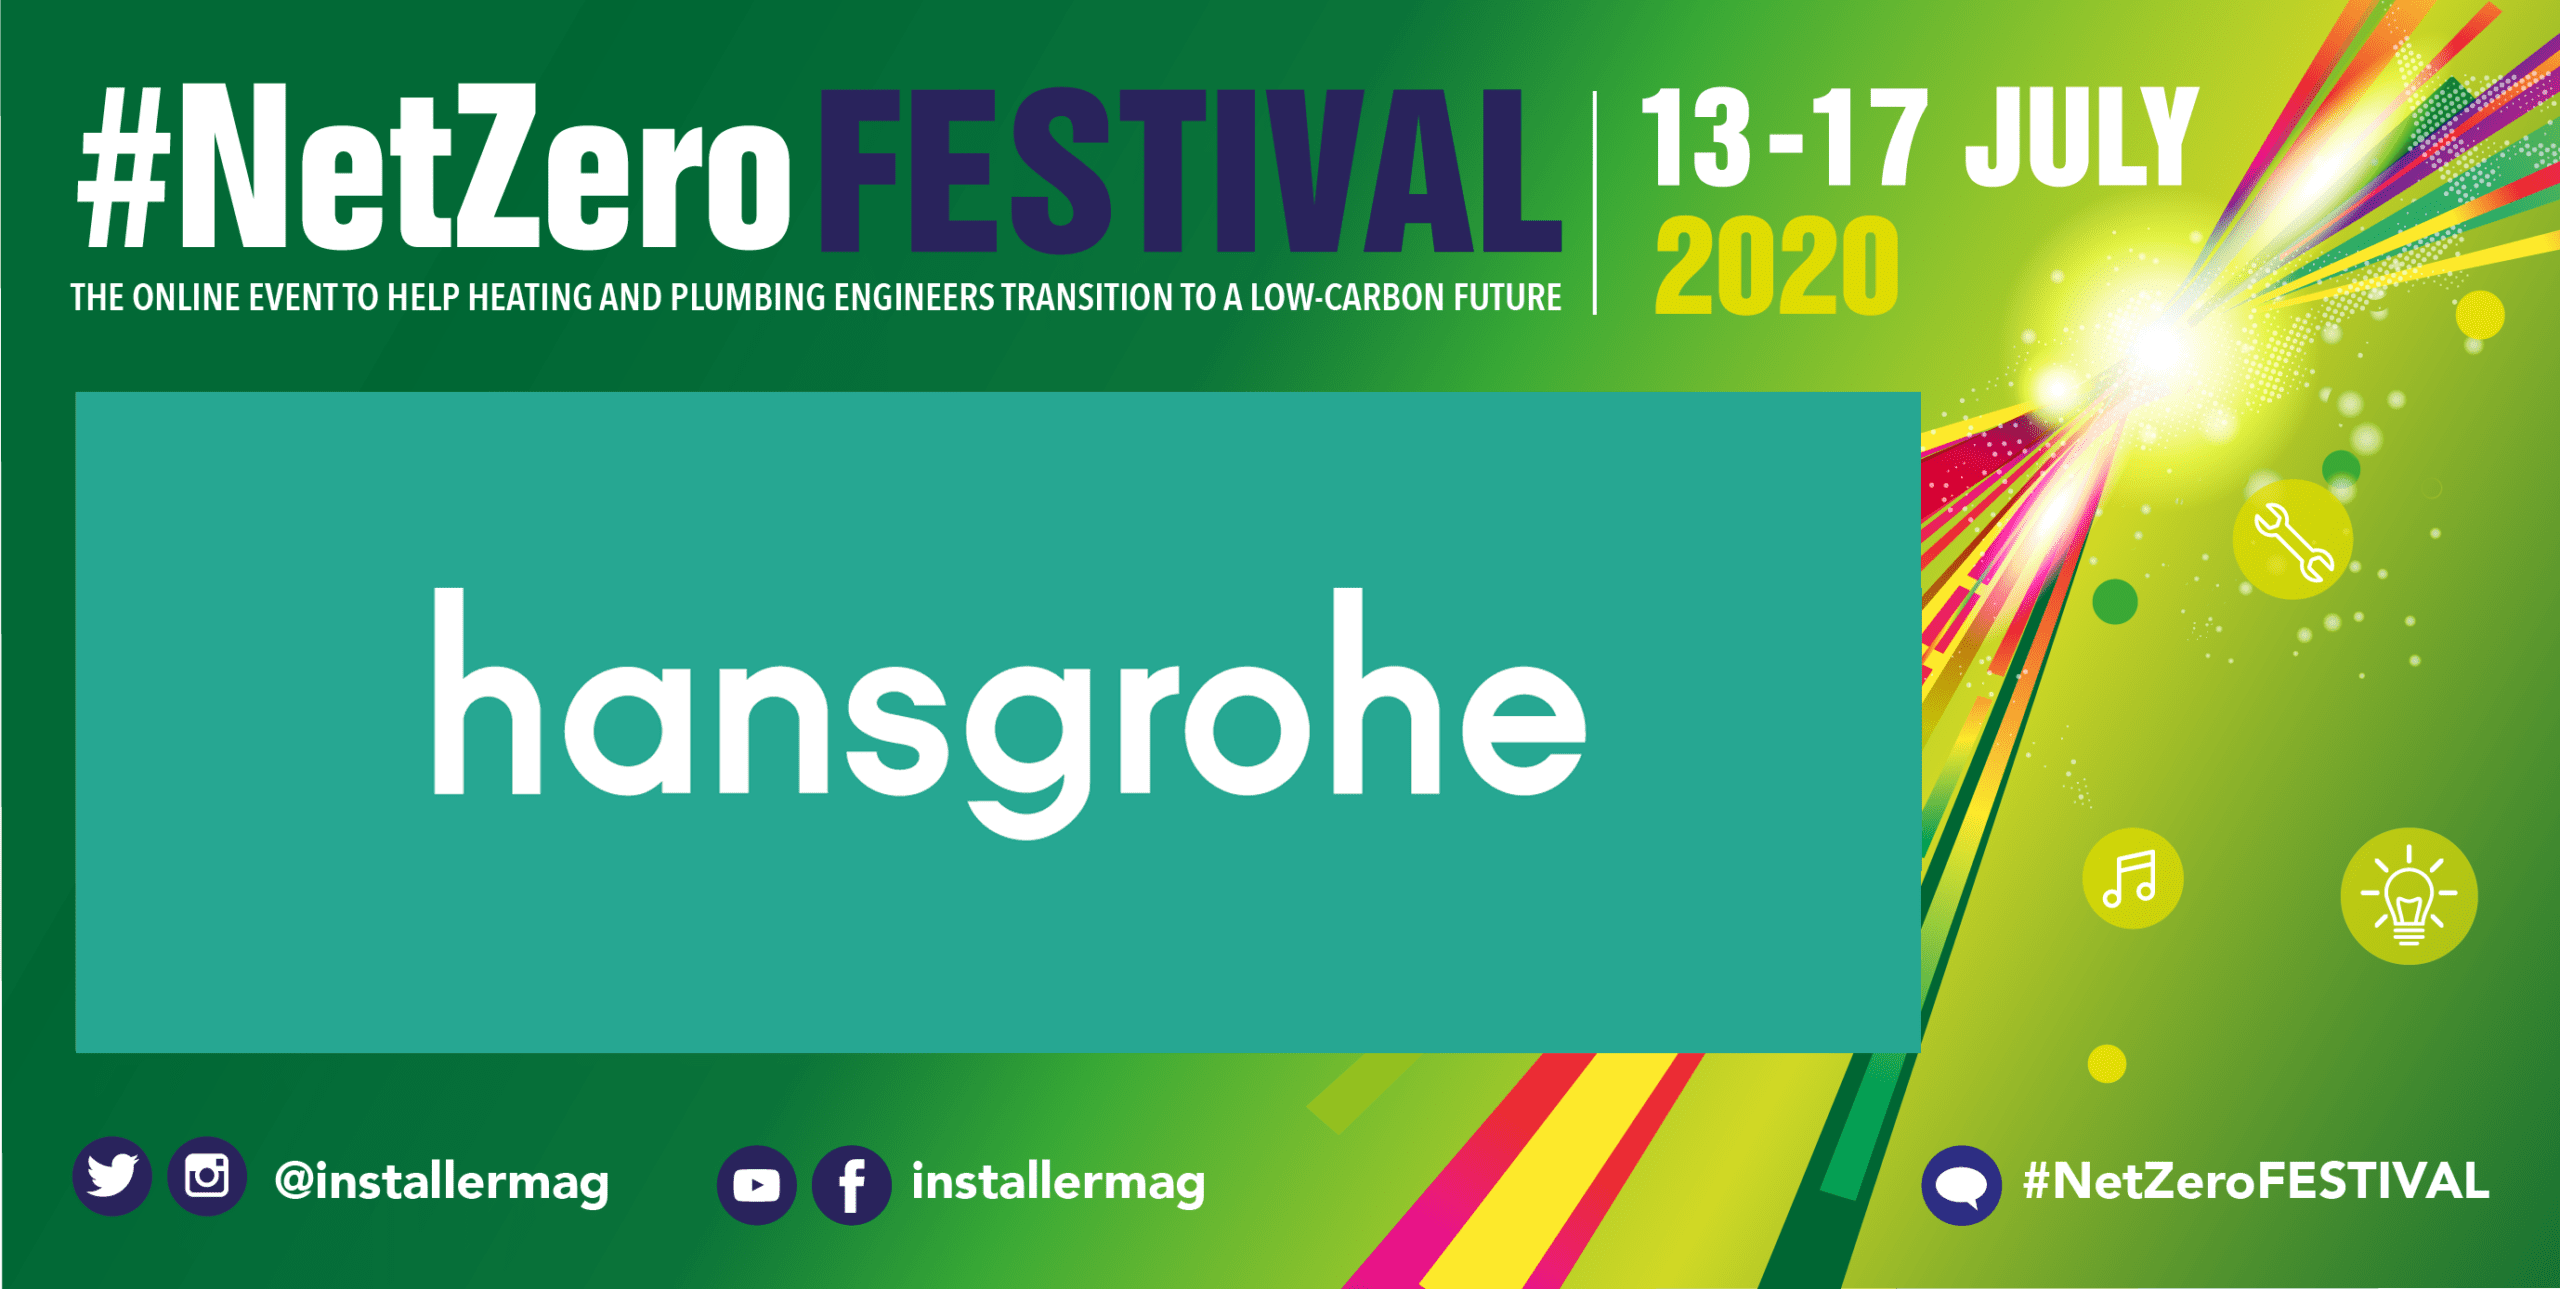 Popular - Webinar: The Importance of Water Saving with Hansgrohe at #NetZeroFestival